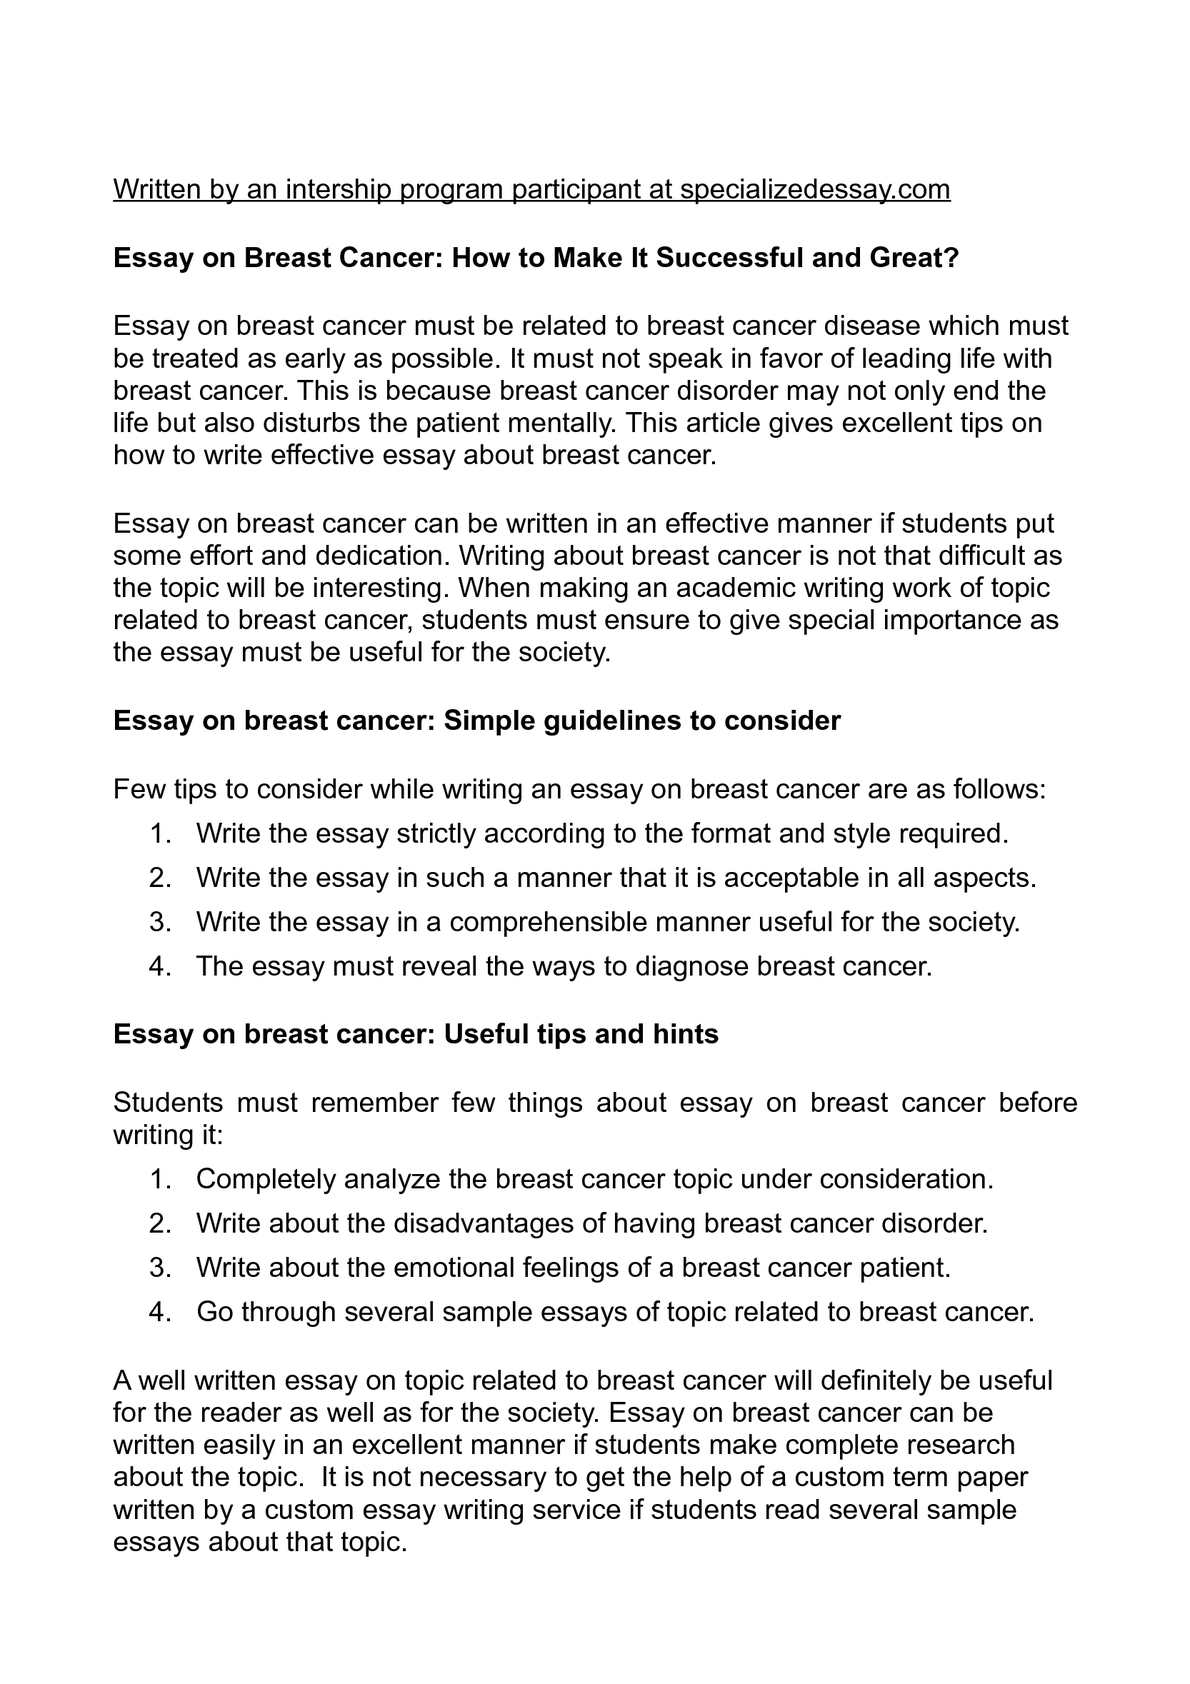 Calam O Essay On Breast Cancer How To Make It Successful